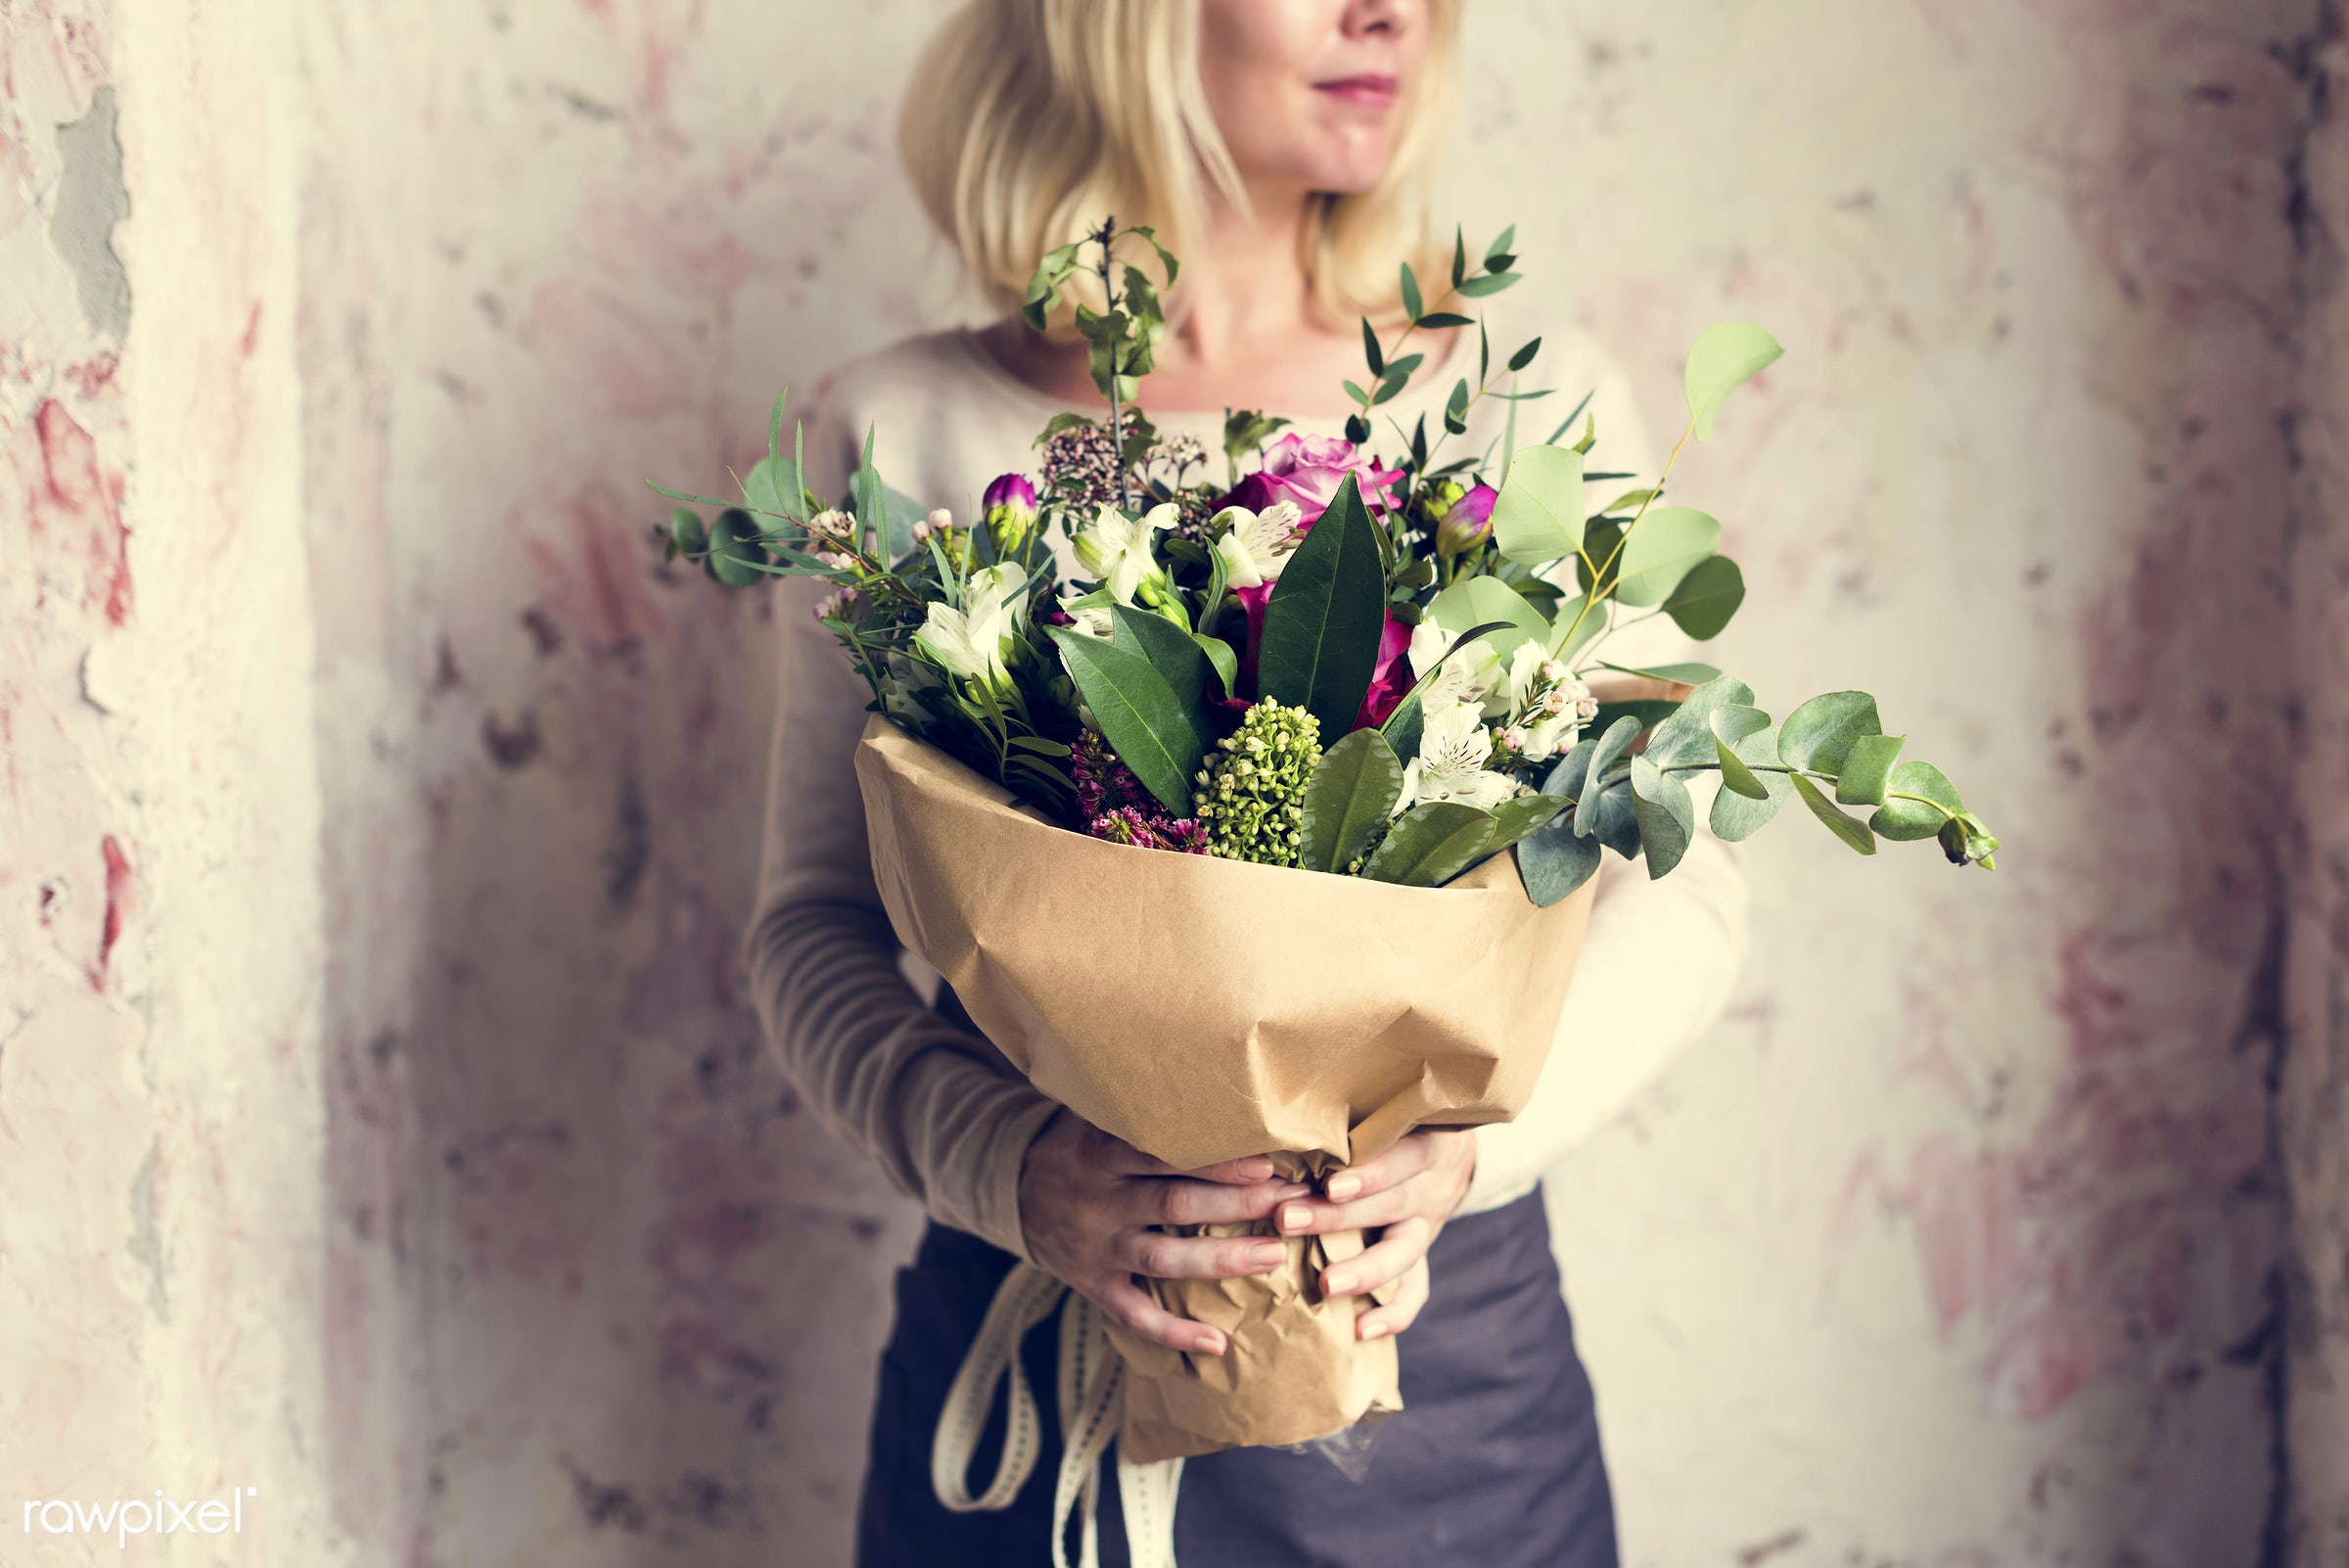 bouquet, detail, person, diverse, holding, show, people, decor, love, nature, woman, care, flowers, cheerful, hold,...